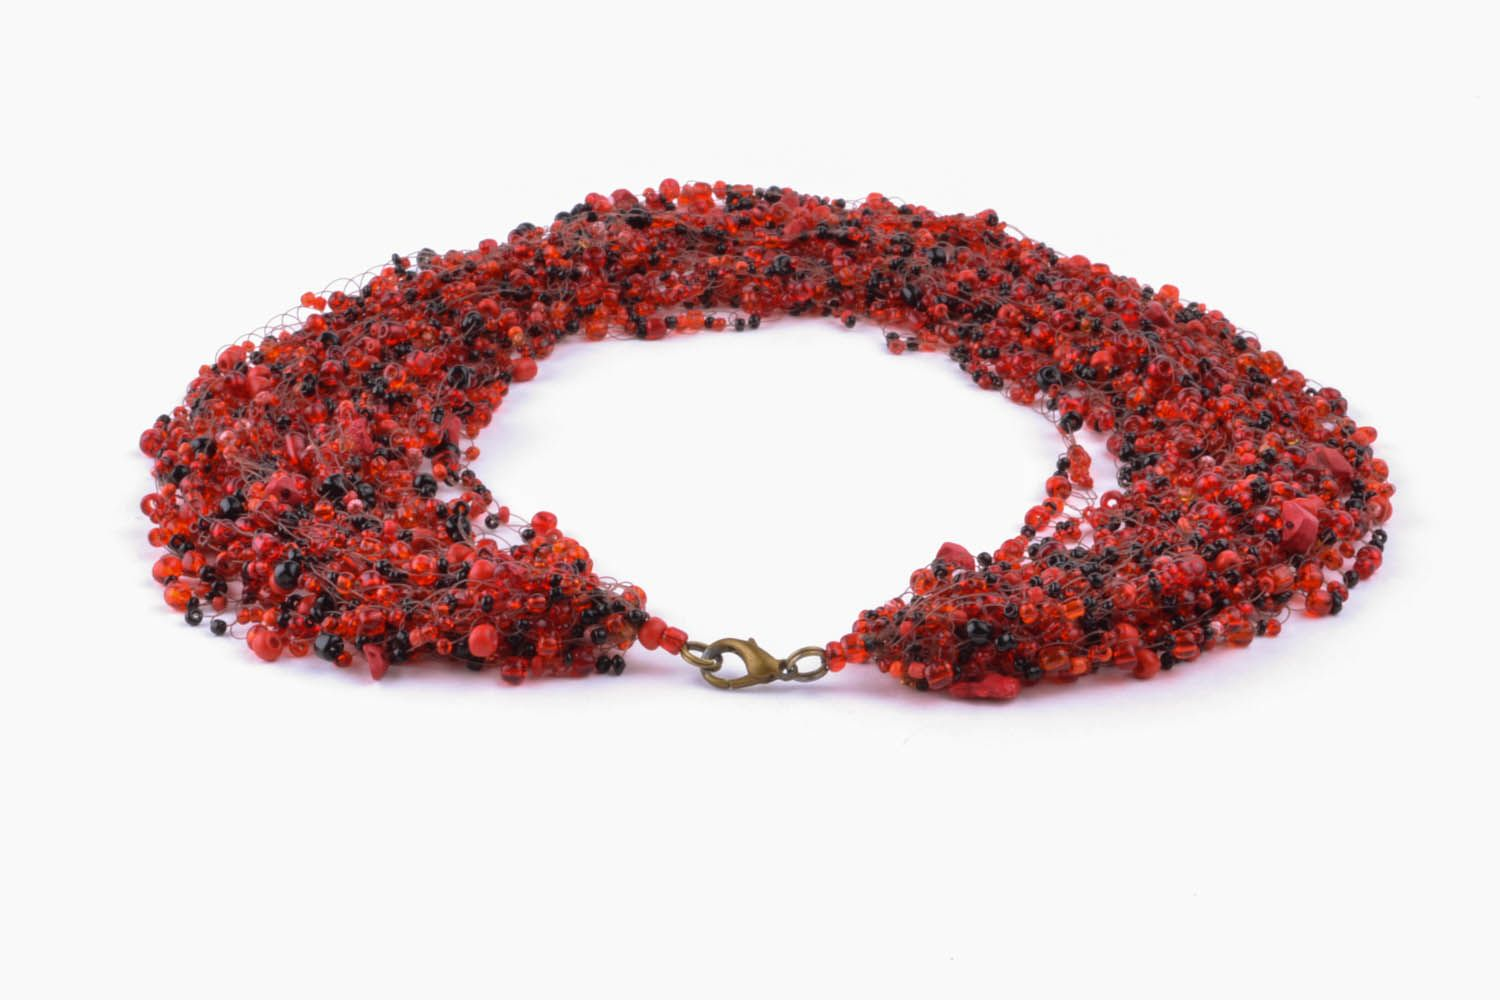 Red and black necklace made of beads and natural stones photo 4